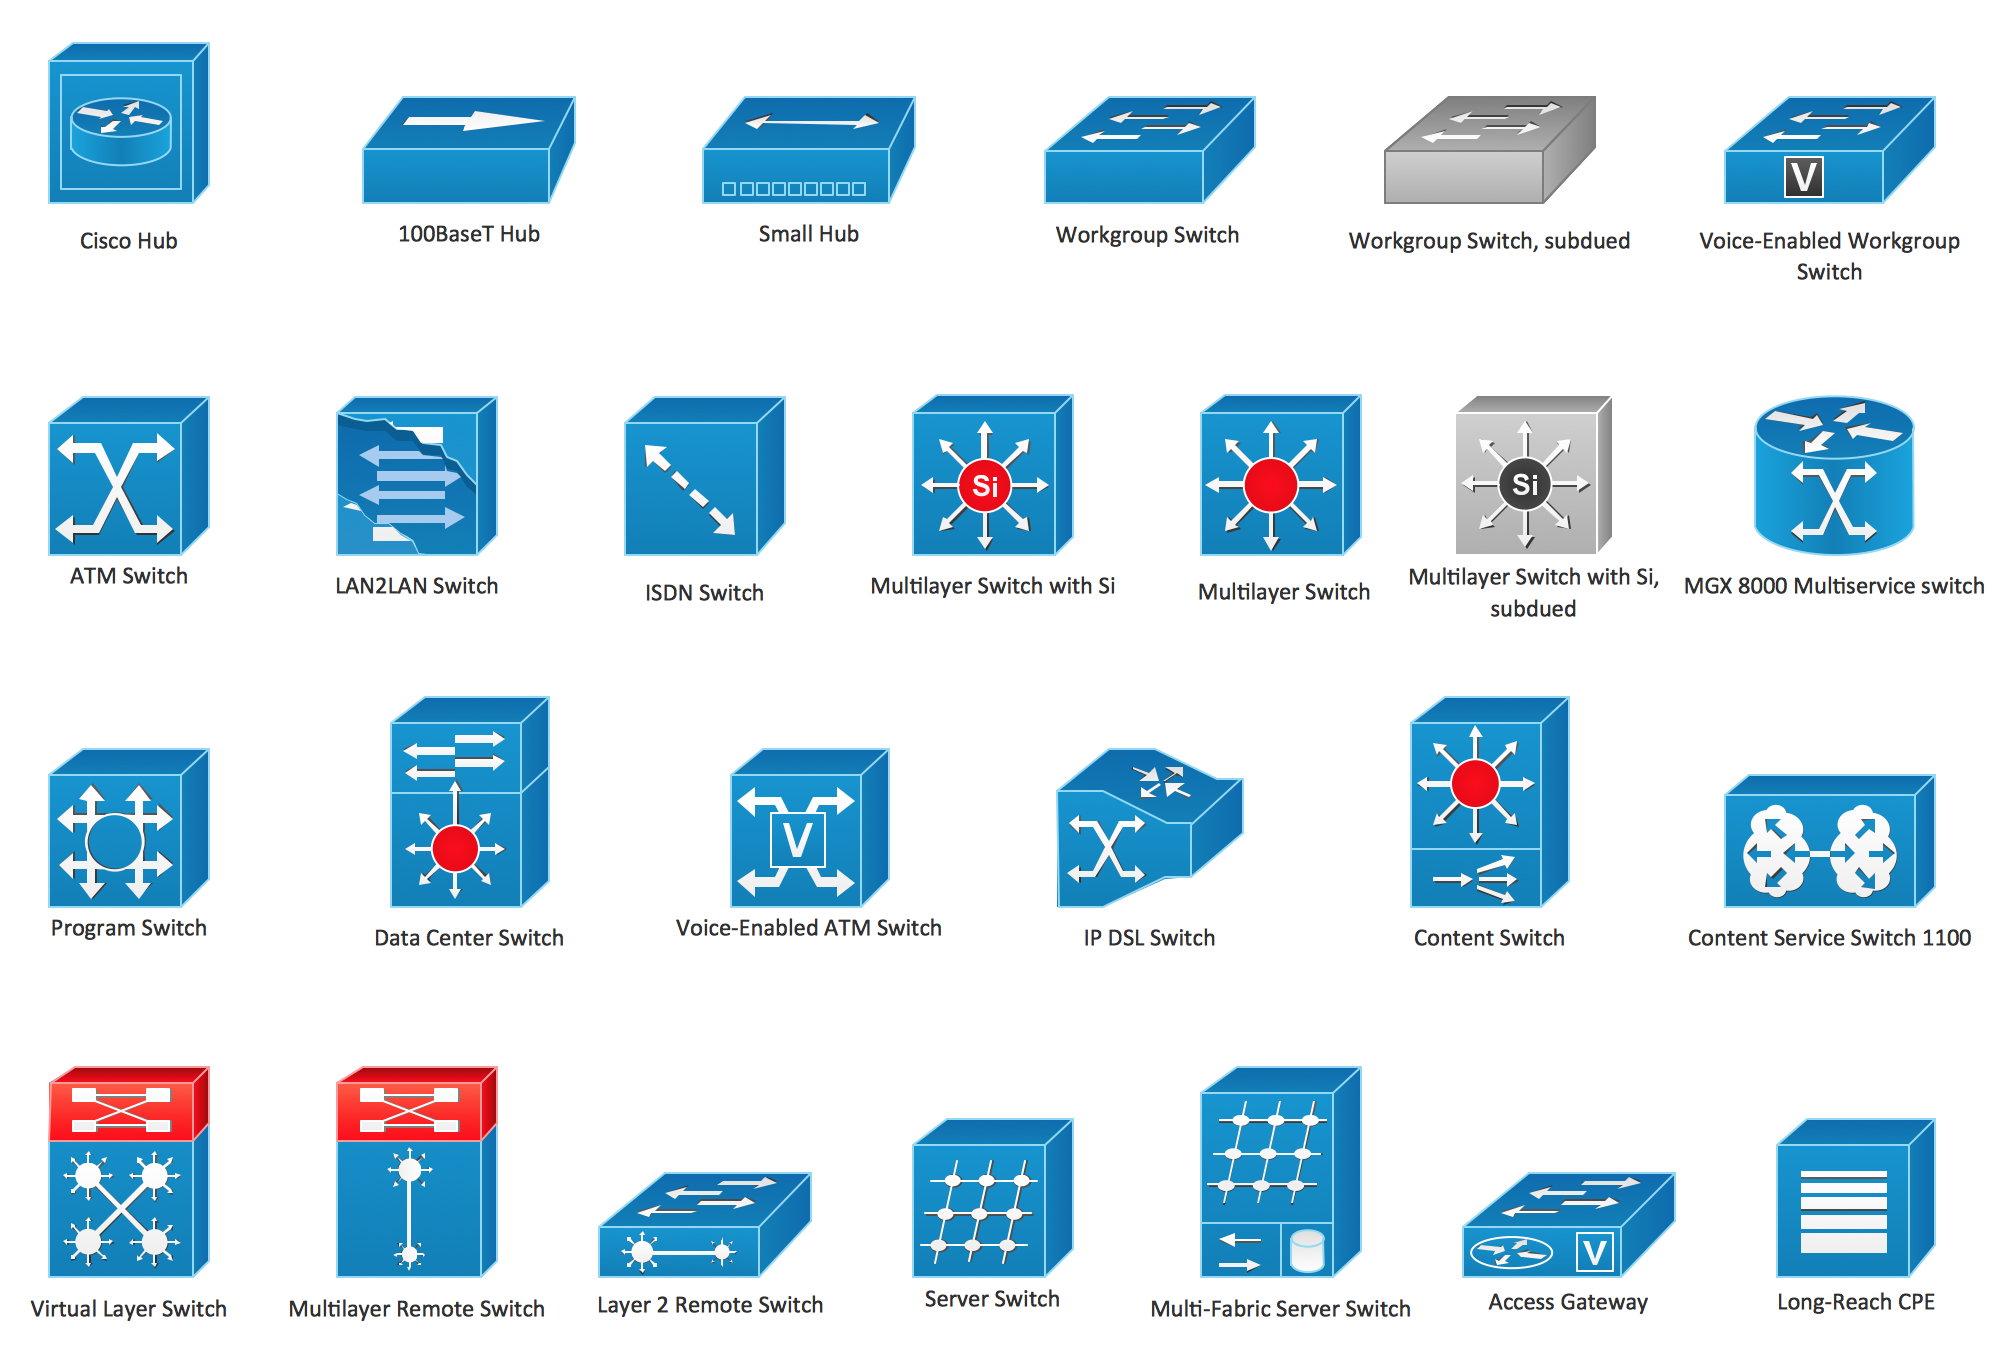 14 Cisco Switch Icon Images